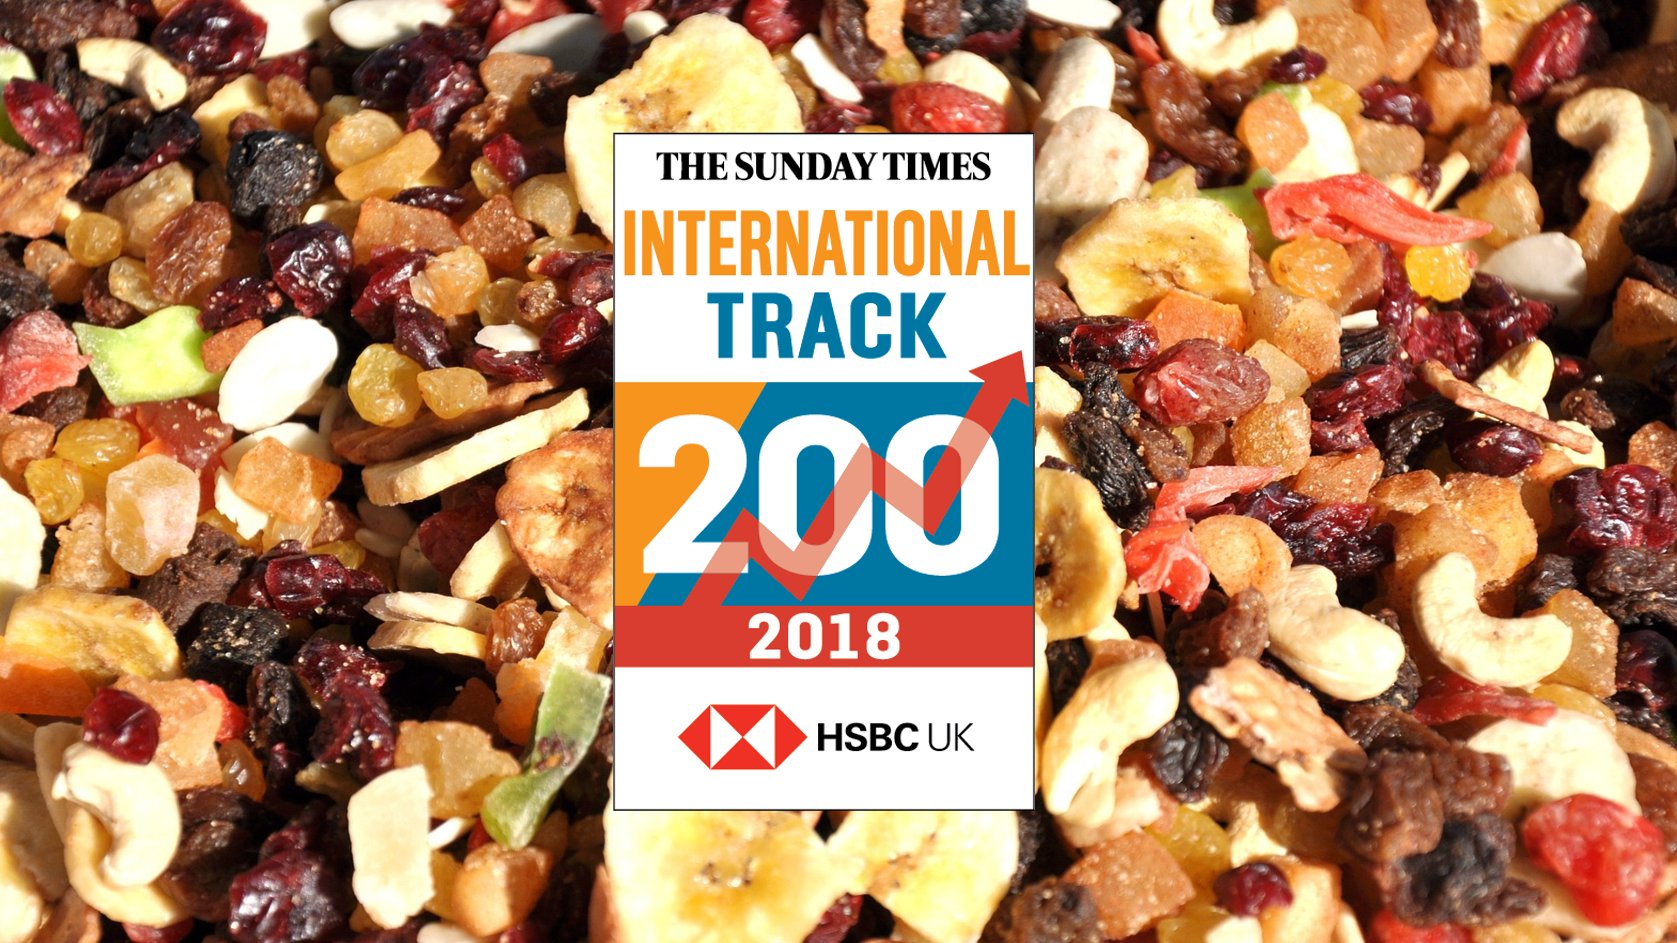 John Morley Ranks in Sunday Times HSBC International Track 200